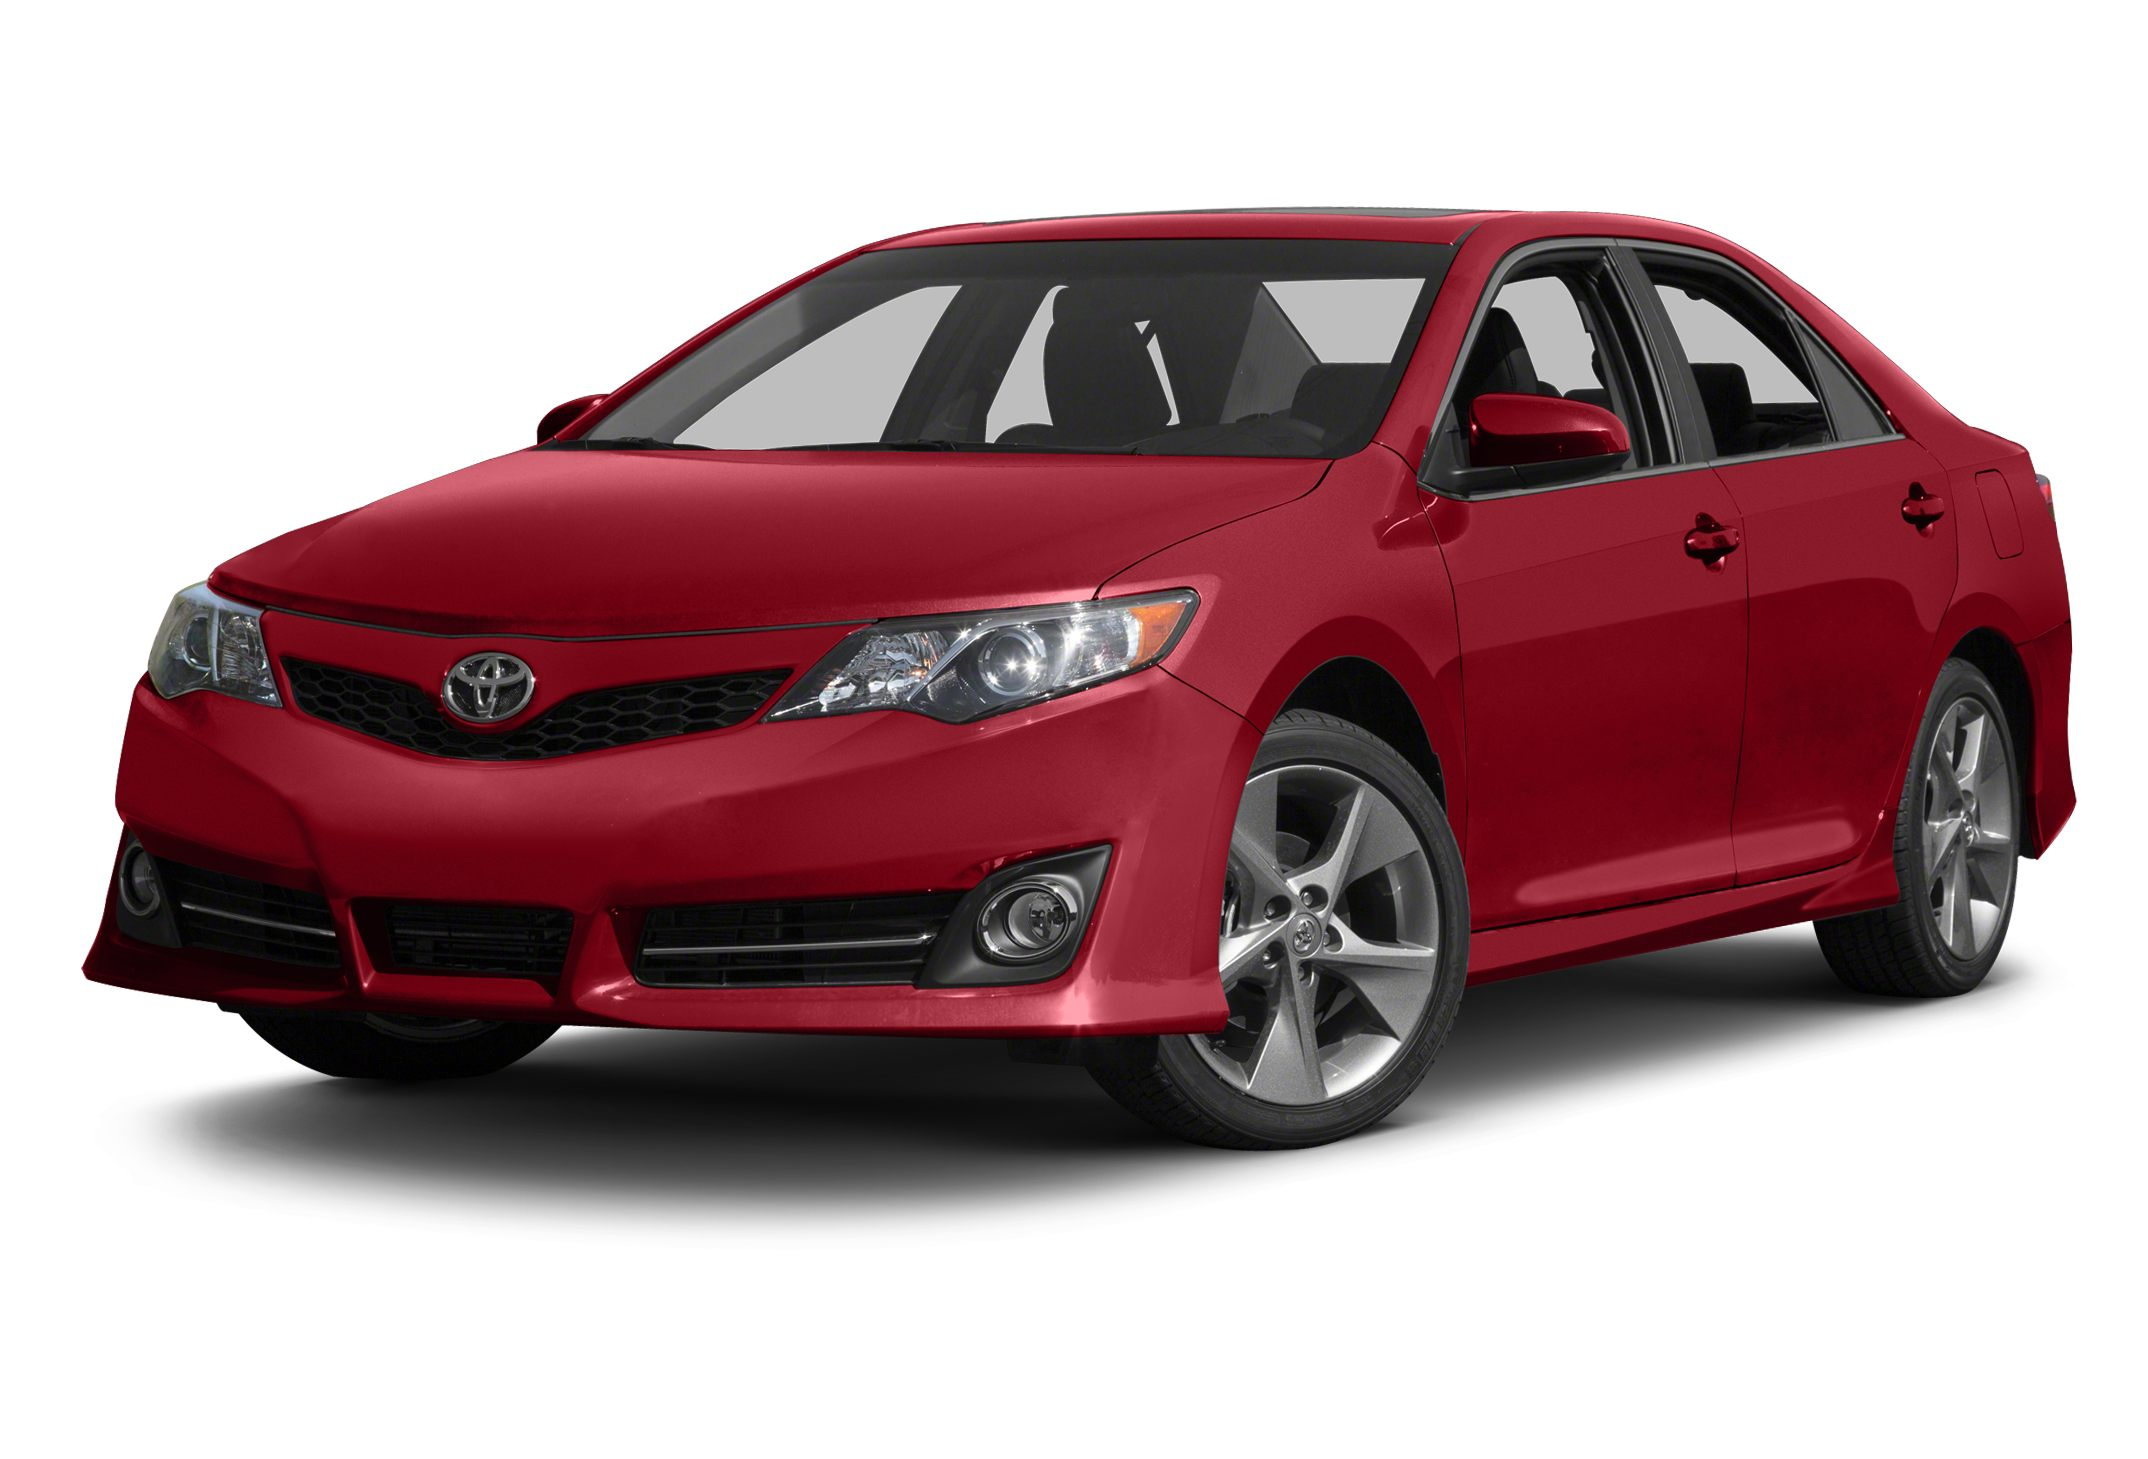 2012 Toyota Camry SE CARFAX 1-Owner GREAT MILES 33777 EPA 35 MPG Hwy25 MPG City SE trim iPod